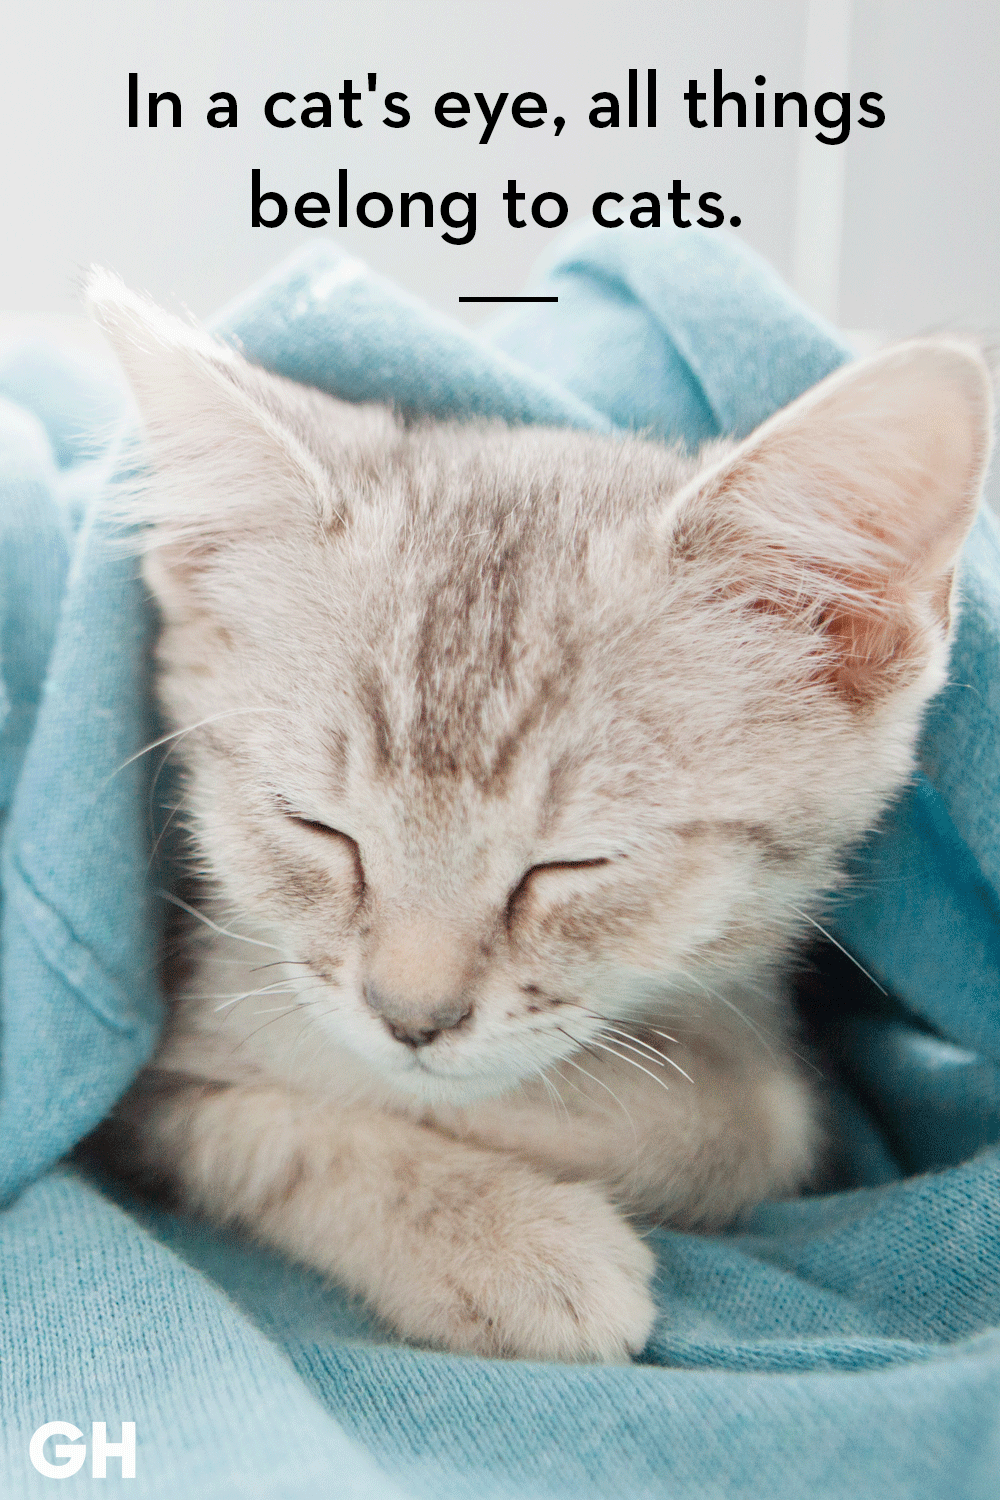 25 Best Cat Quotes That Perfectly Describe Your Kitten